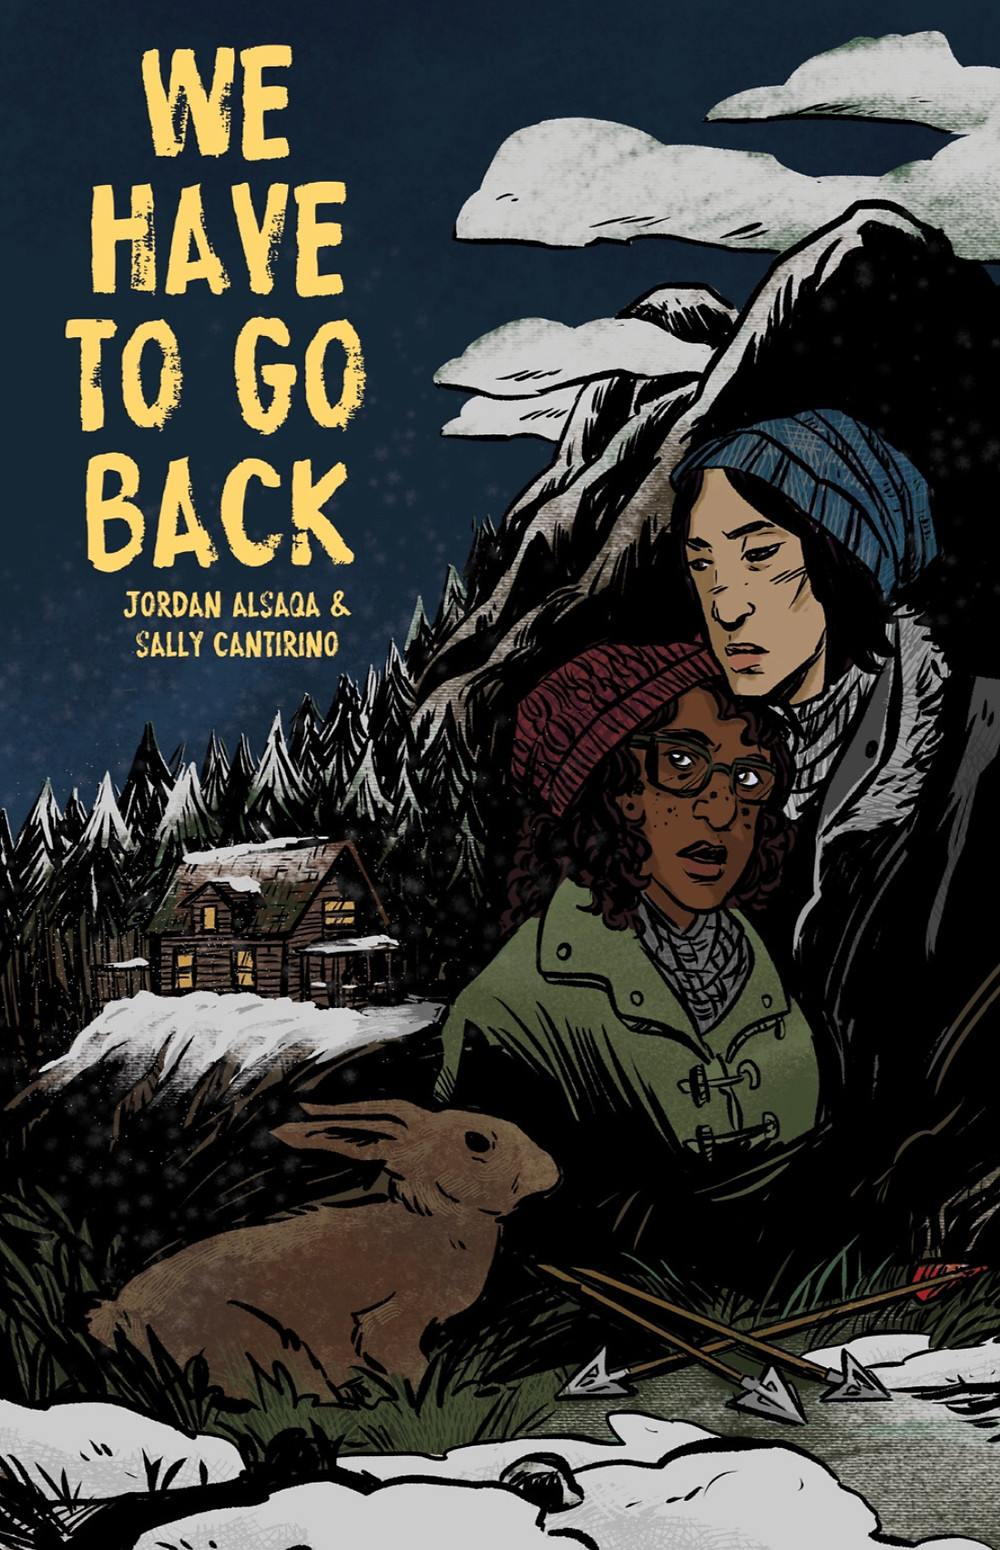 We Have To Go Back, cover, Self-published, Alsaqa/Cantirino